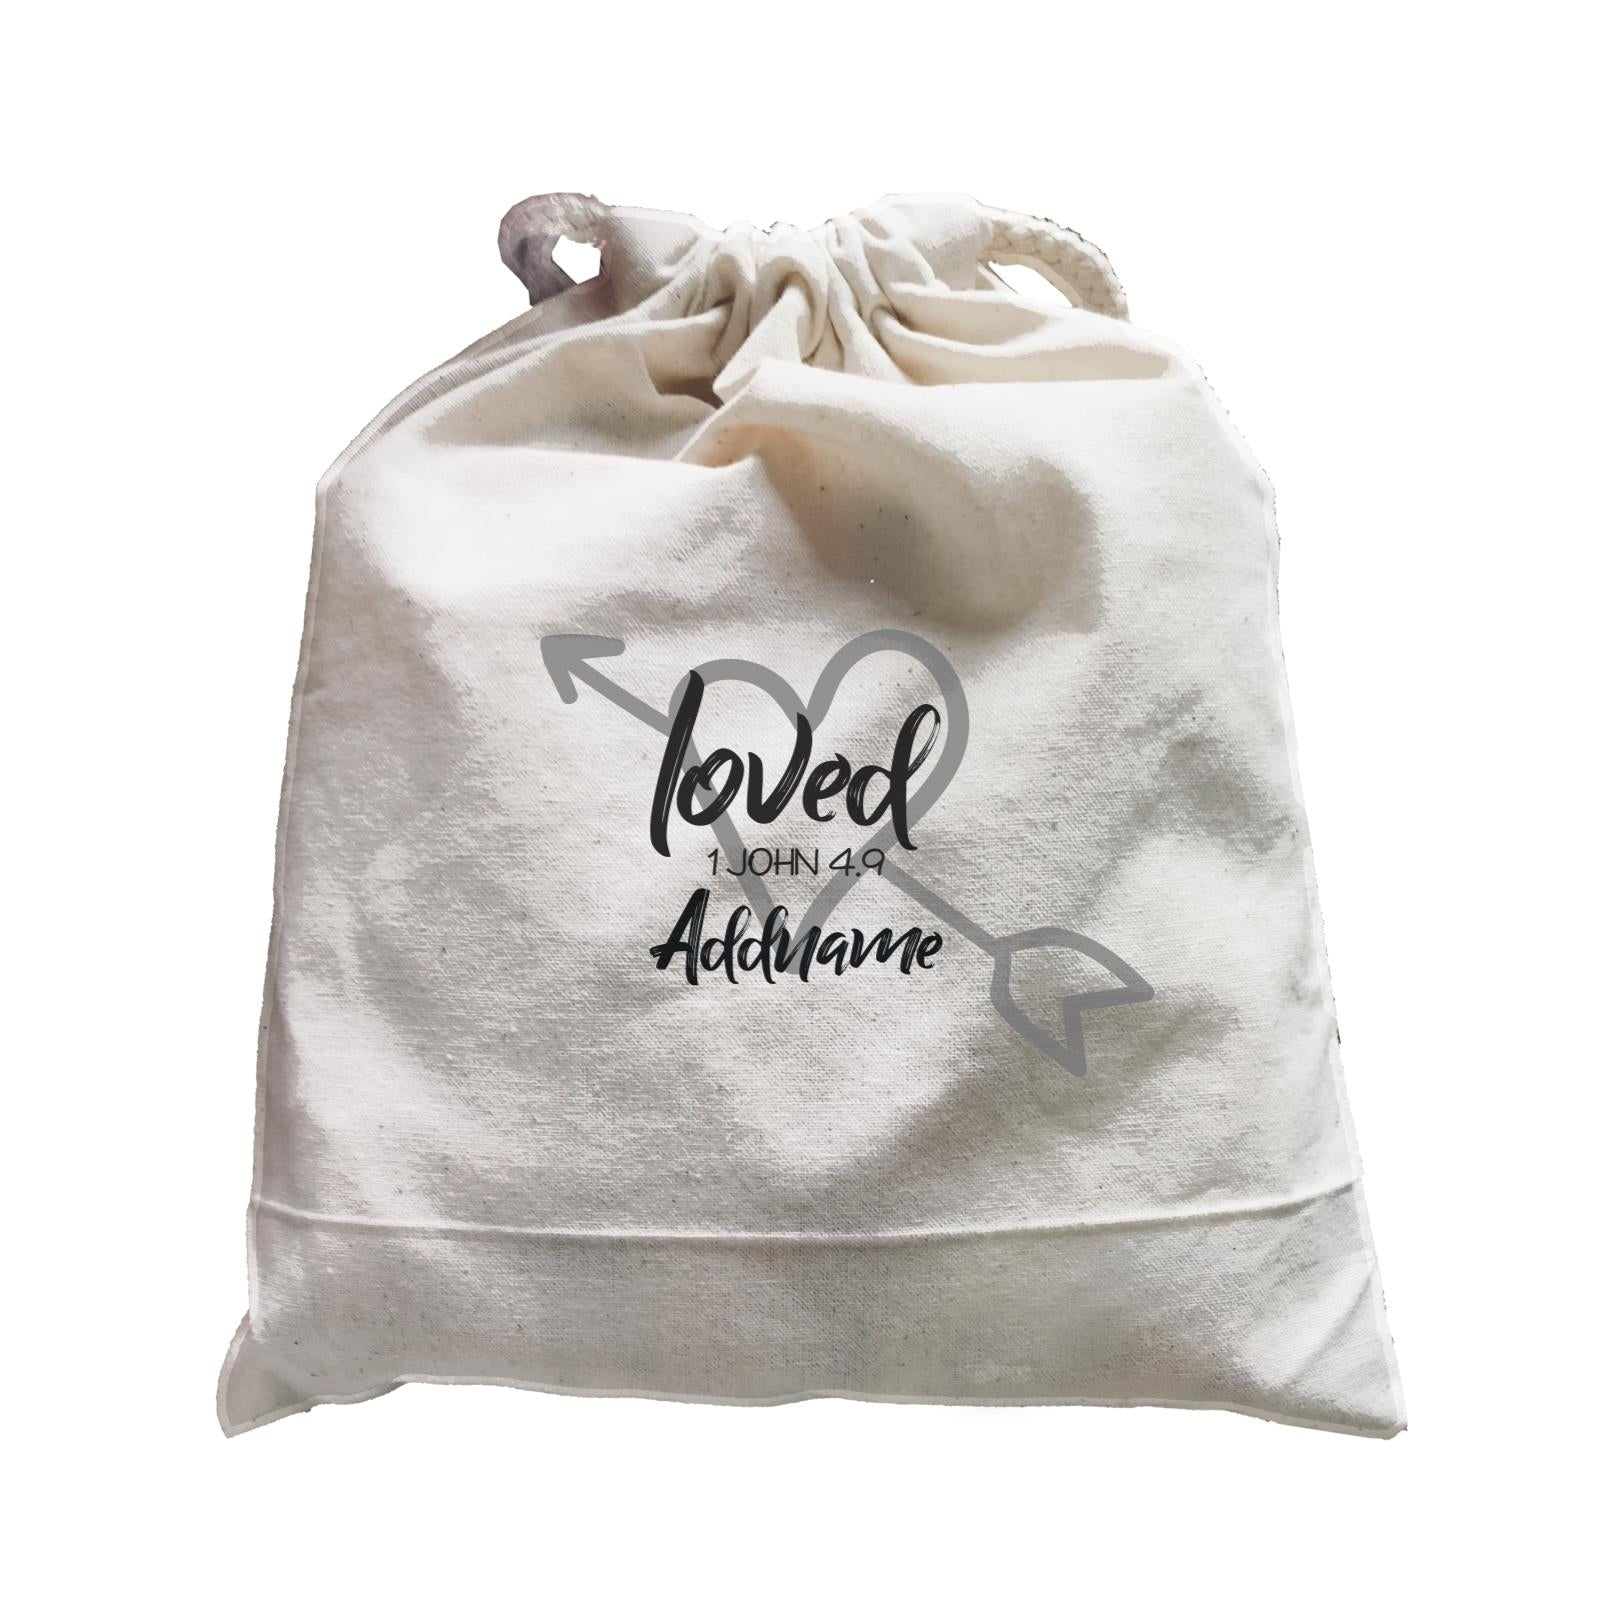 Loved Family Loved With Heart And Arrow 1 John 4.9 Addname Accessories Satchel